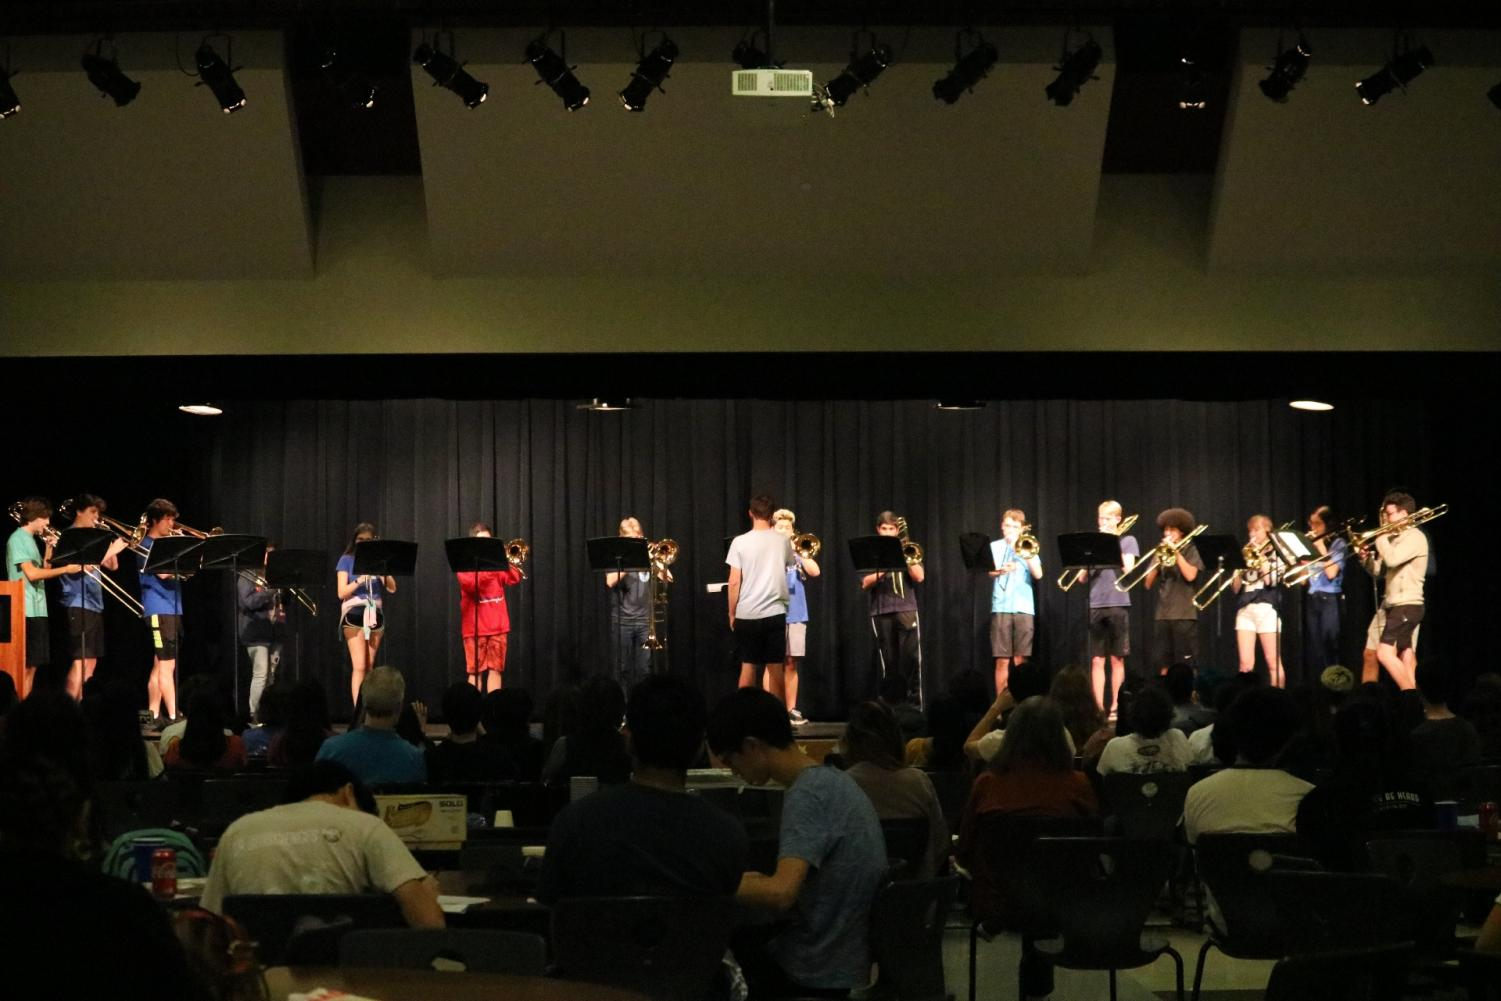 Students+Host+IB+Talent+Show+For+Parents+and+Peers